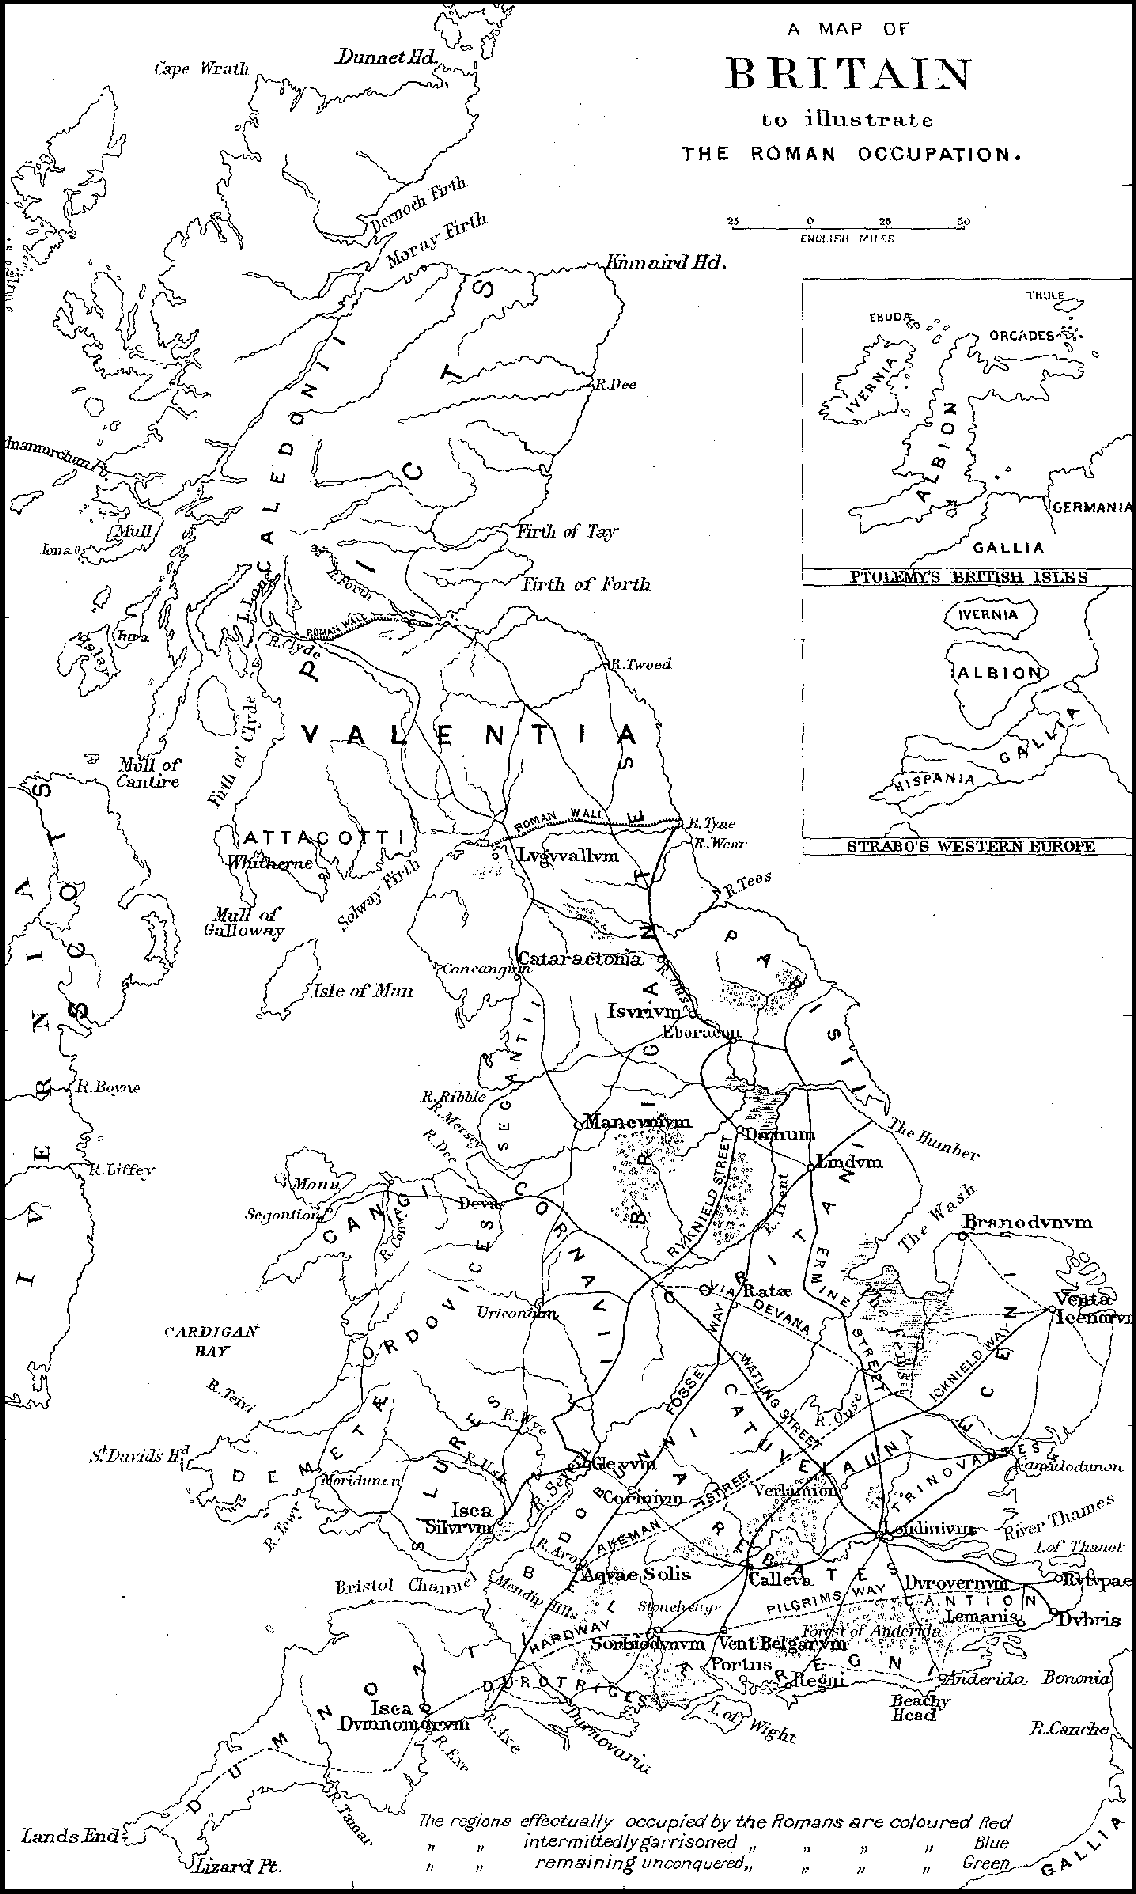 The project gutenberg ebook of early britain roman britain by a map of britain to illustrate the roman occupation london published by the society for promoting christian knowledge fandeluxe Images